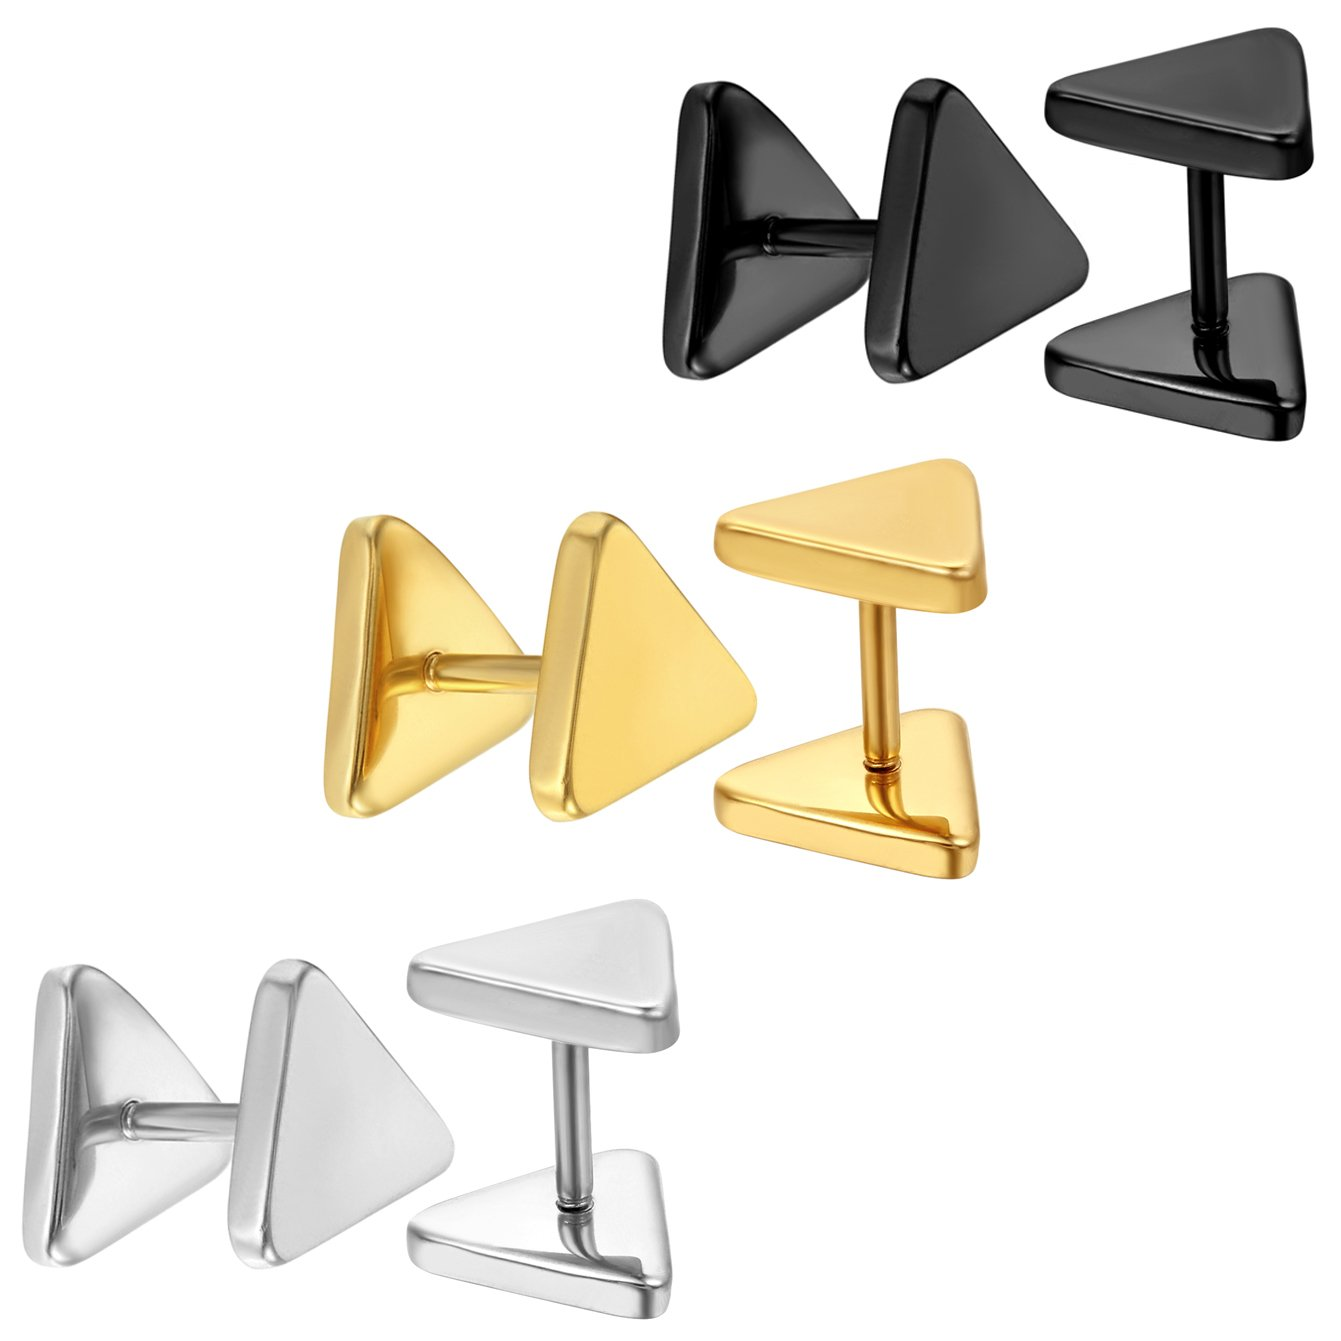 Aroncent Jewelry Stainless Steel Men Stud Earrings for Women Cool Ear Piercing Plugs Triangle Tunnel 18G arnfr-0348